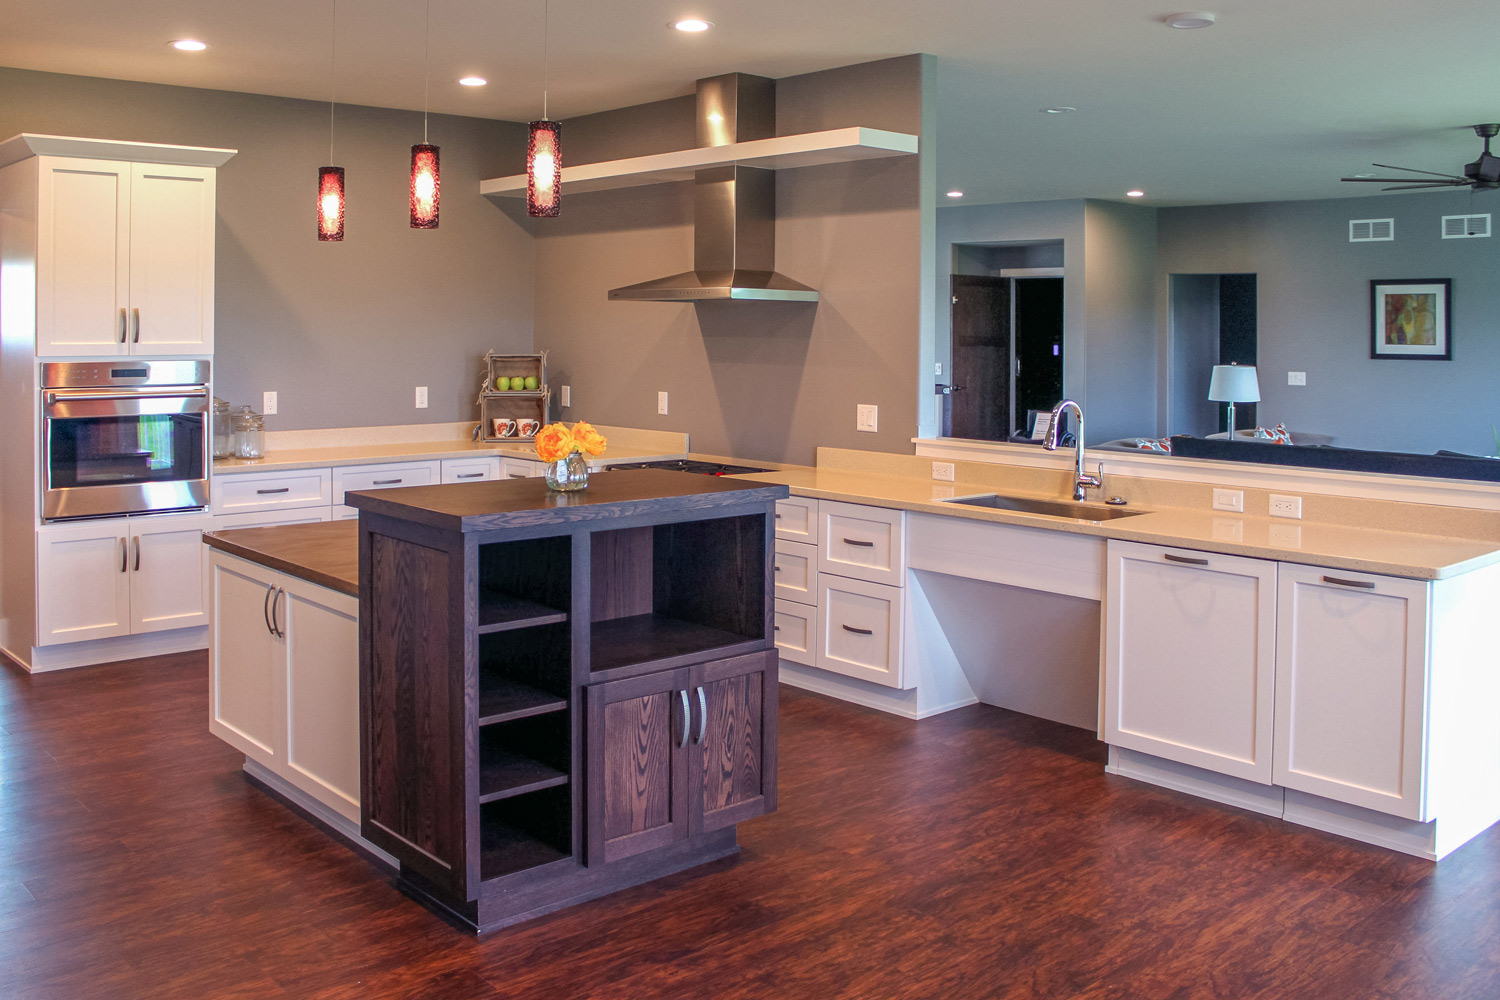 - This universal design kitchen includes multiple height work areas, minimal upper cabinets, a roll-under sink, and a wall oven.